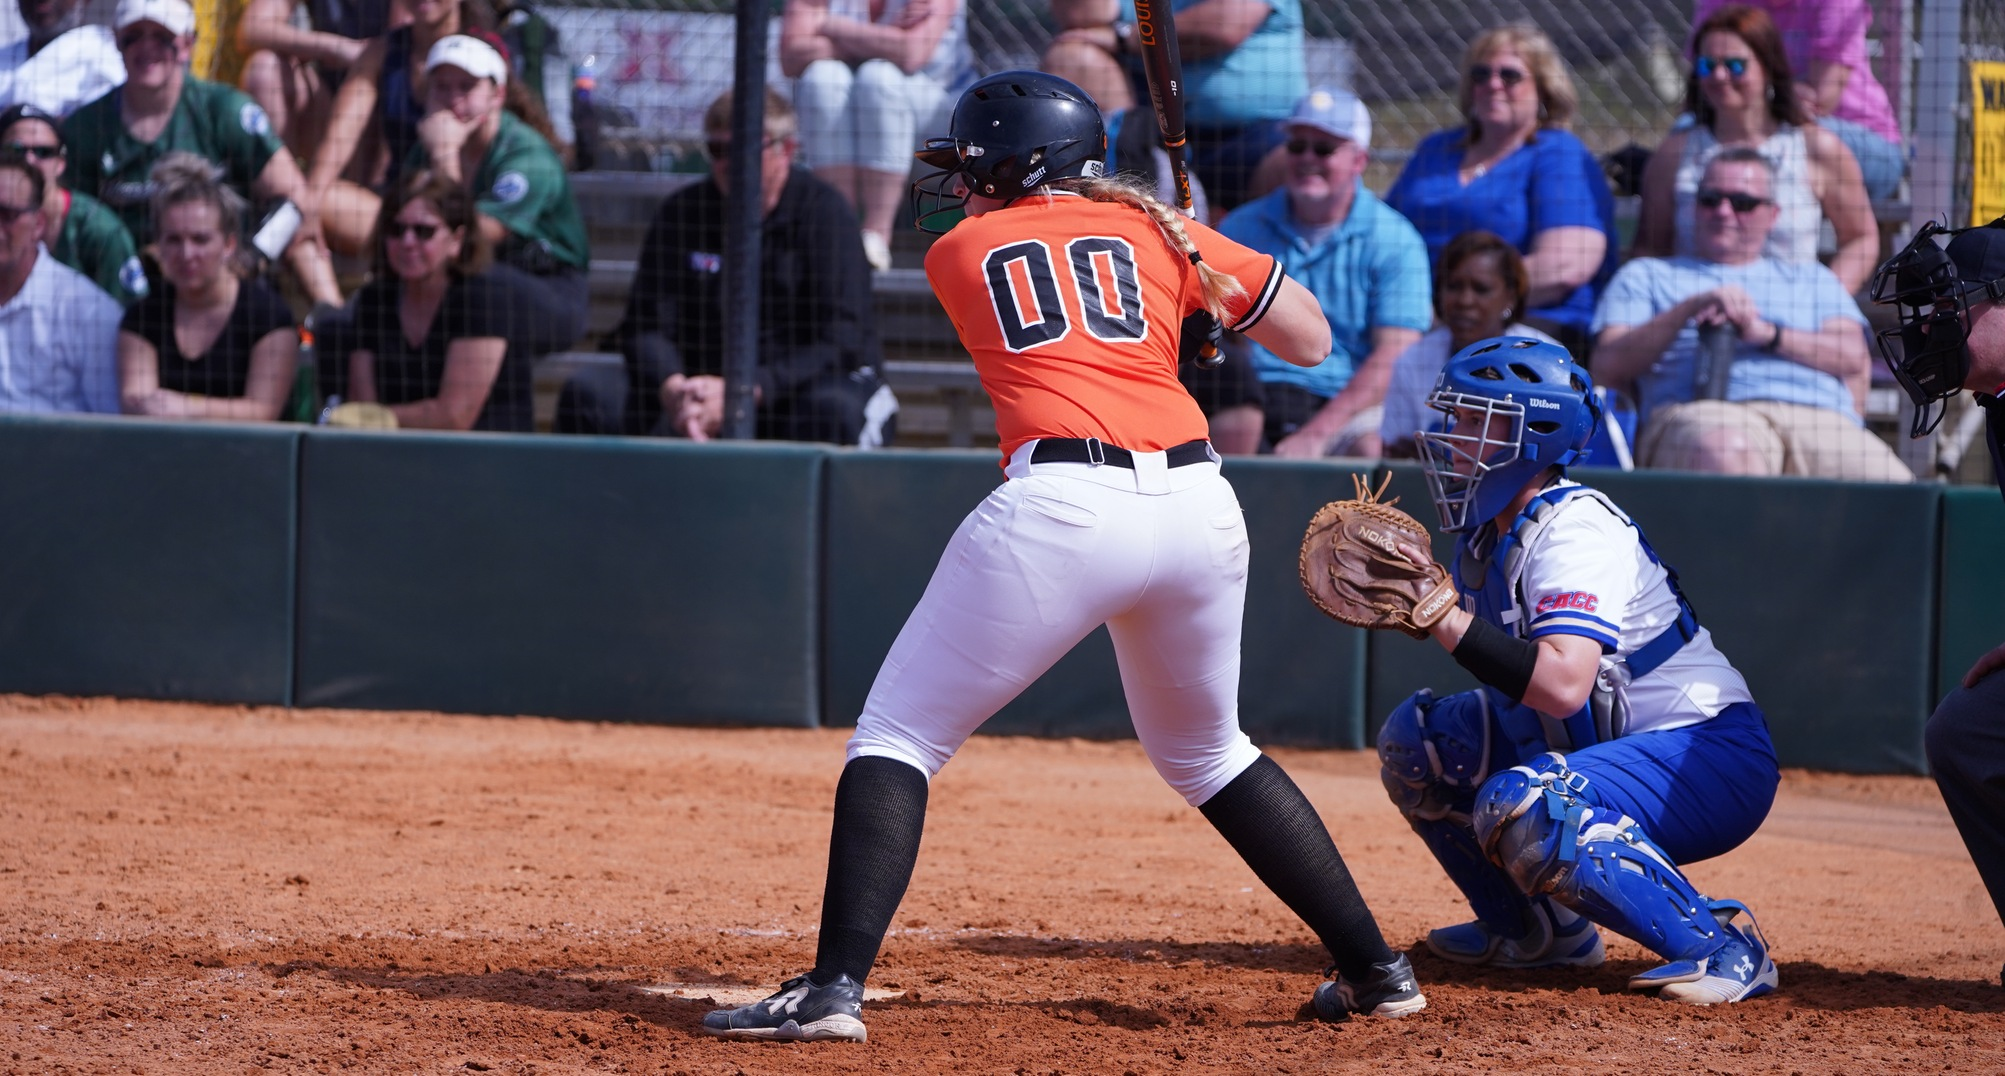 Findlay Drops League Double-Header at ODU